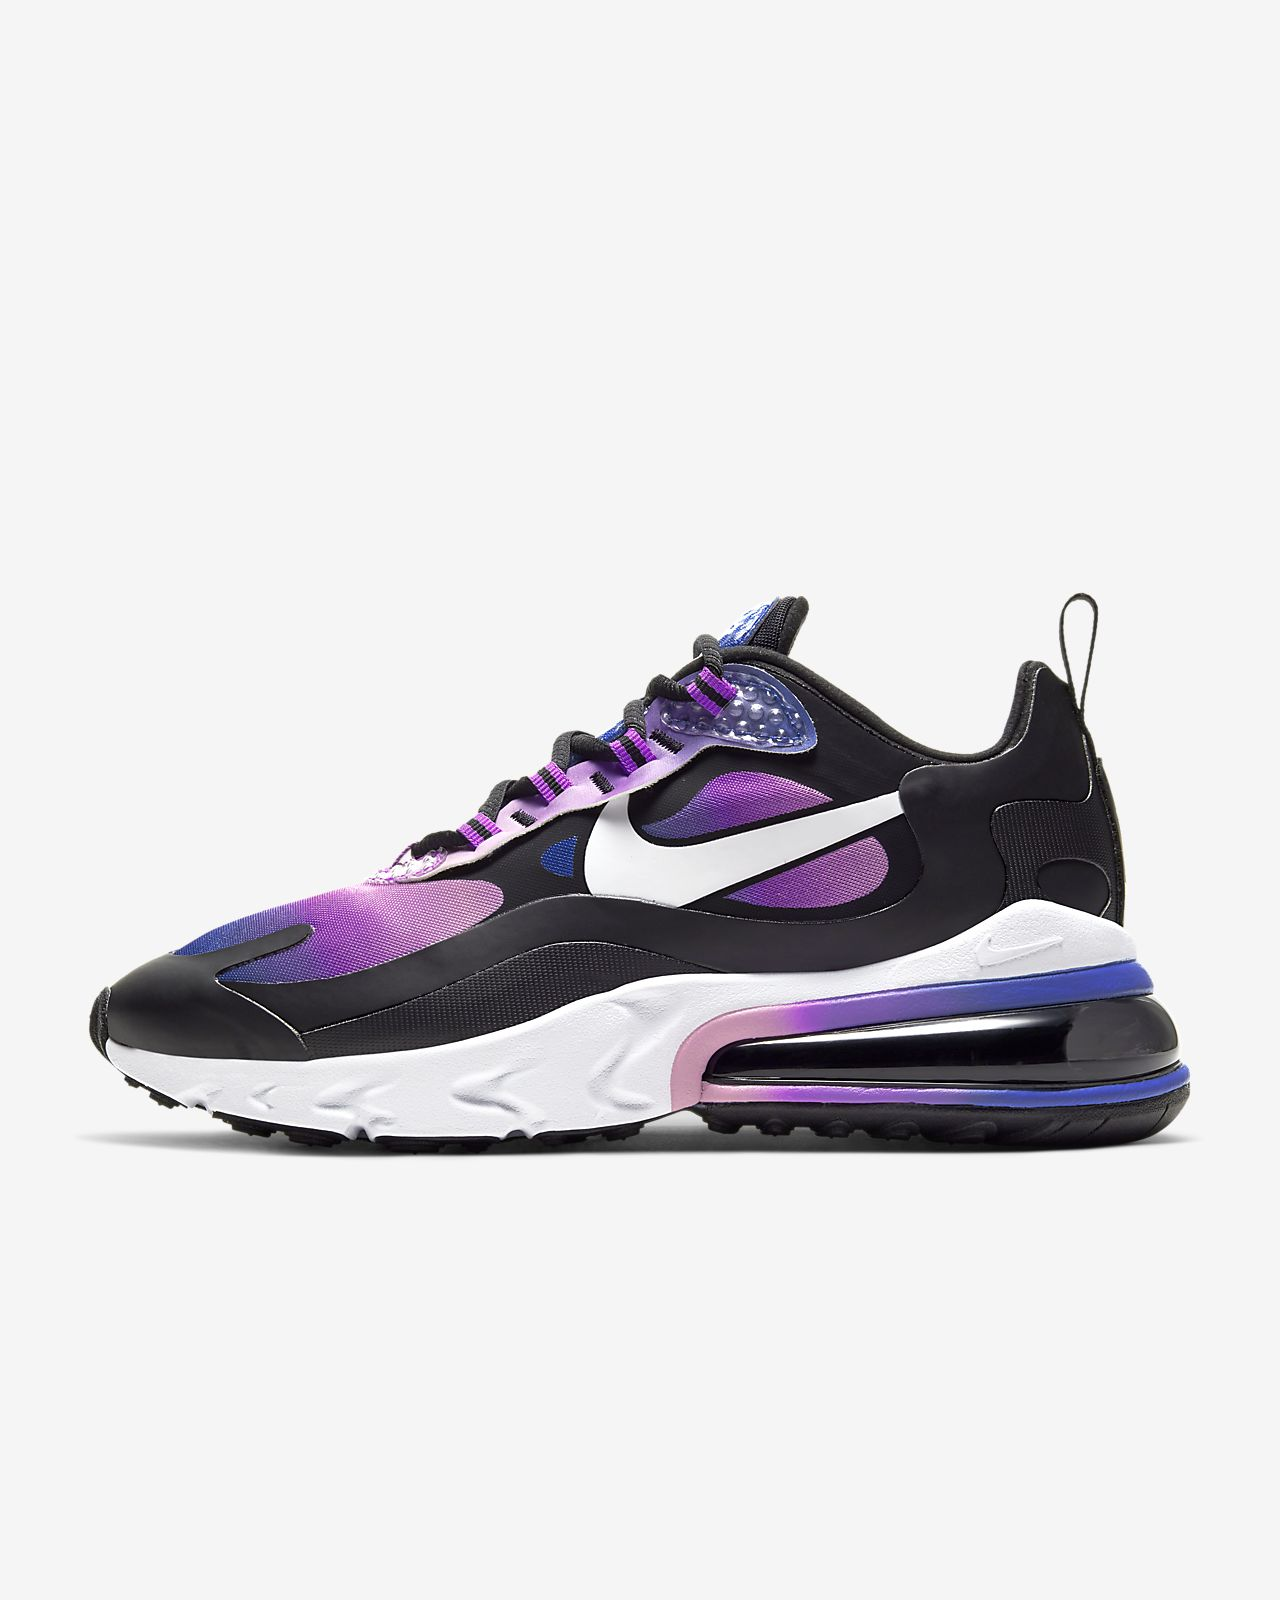 chaussures nike 270 femmes